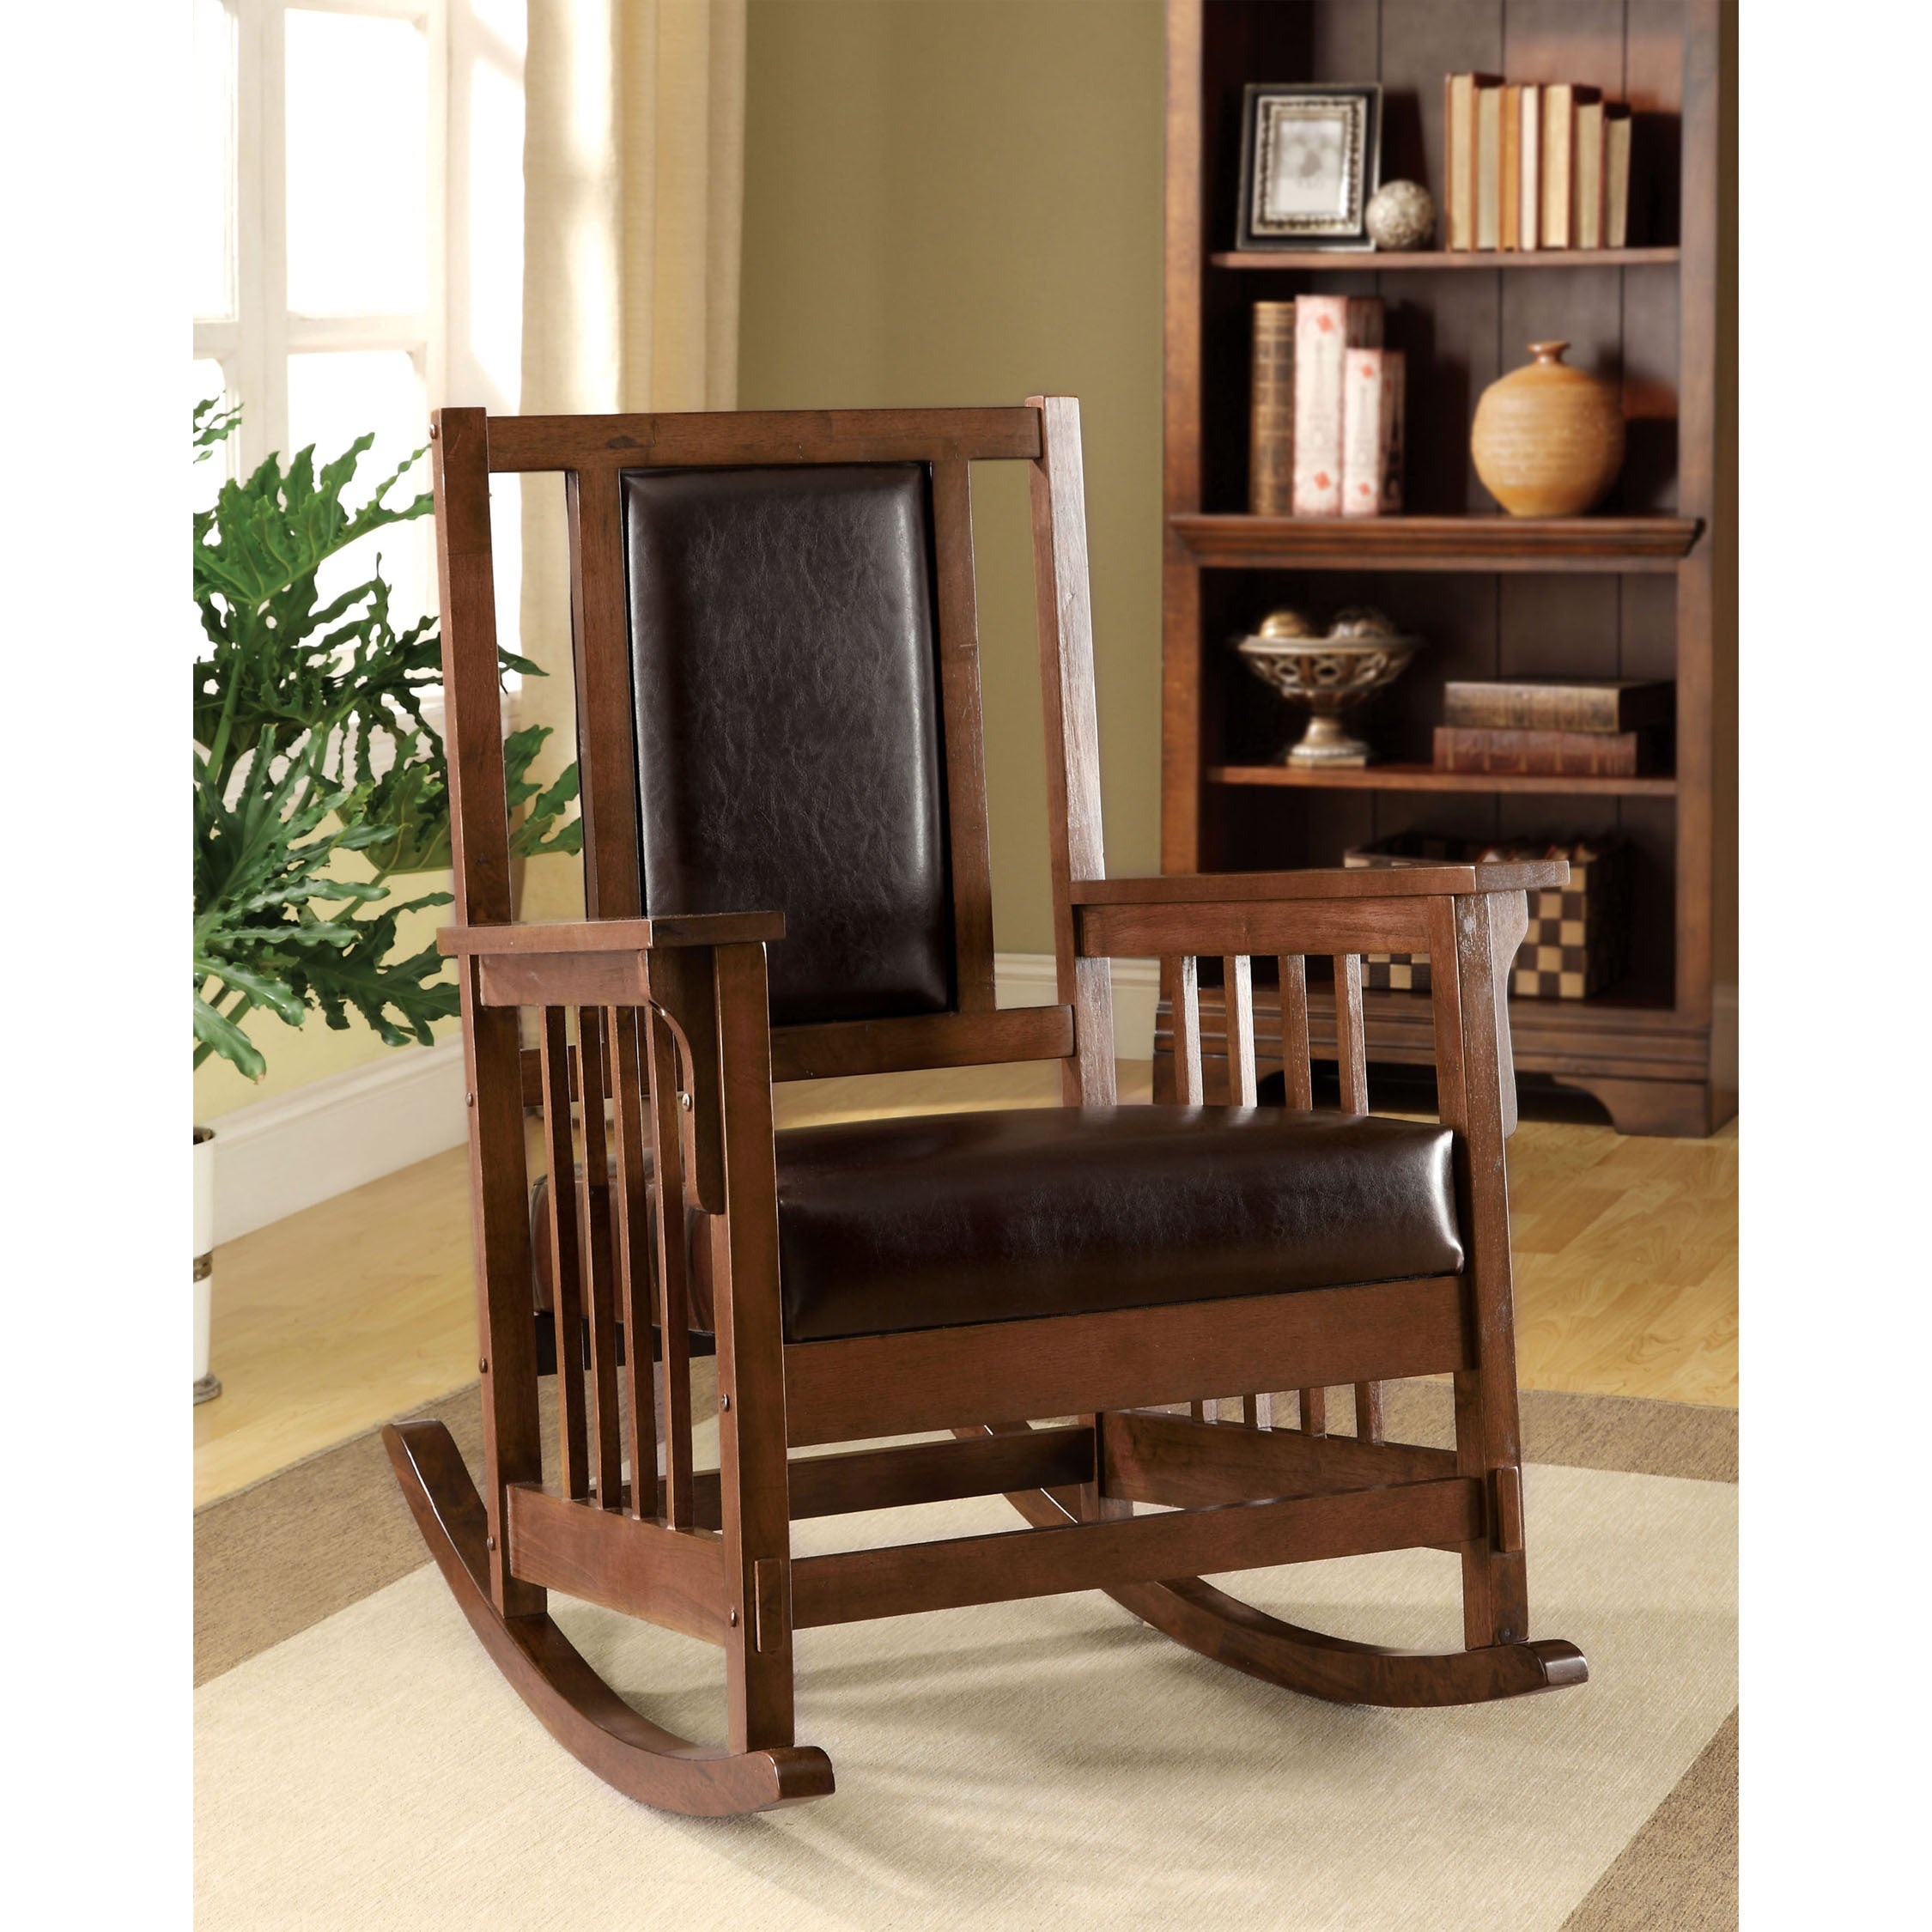 Poppy Mission Espresso Rocking Chairfoa With Regard To Liverpool Classic Style Rocking Chairs In Antique Oak Finish (#19 of 20)